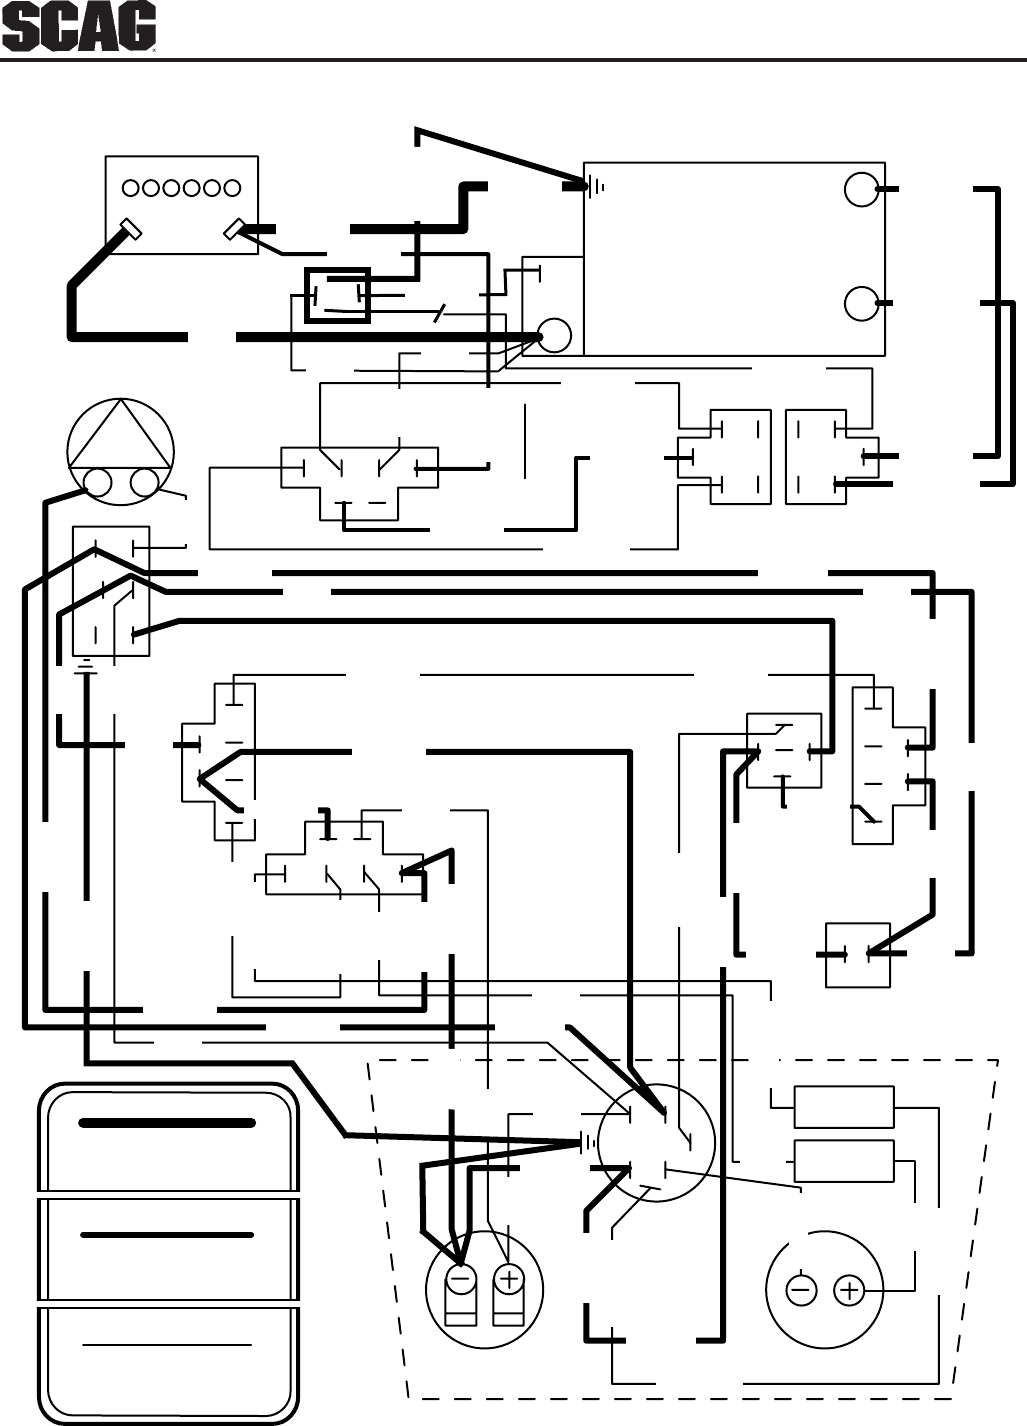 b9ce615b 020e 4d78 97db 0a4906c05276 bg22 scag wiring diagram on scag images free download wiring diagrams  at webbmarketing.co